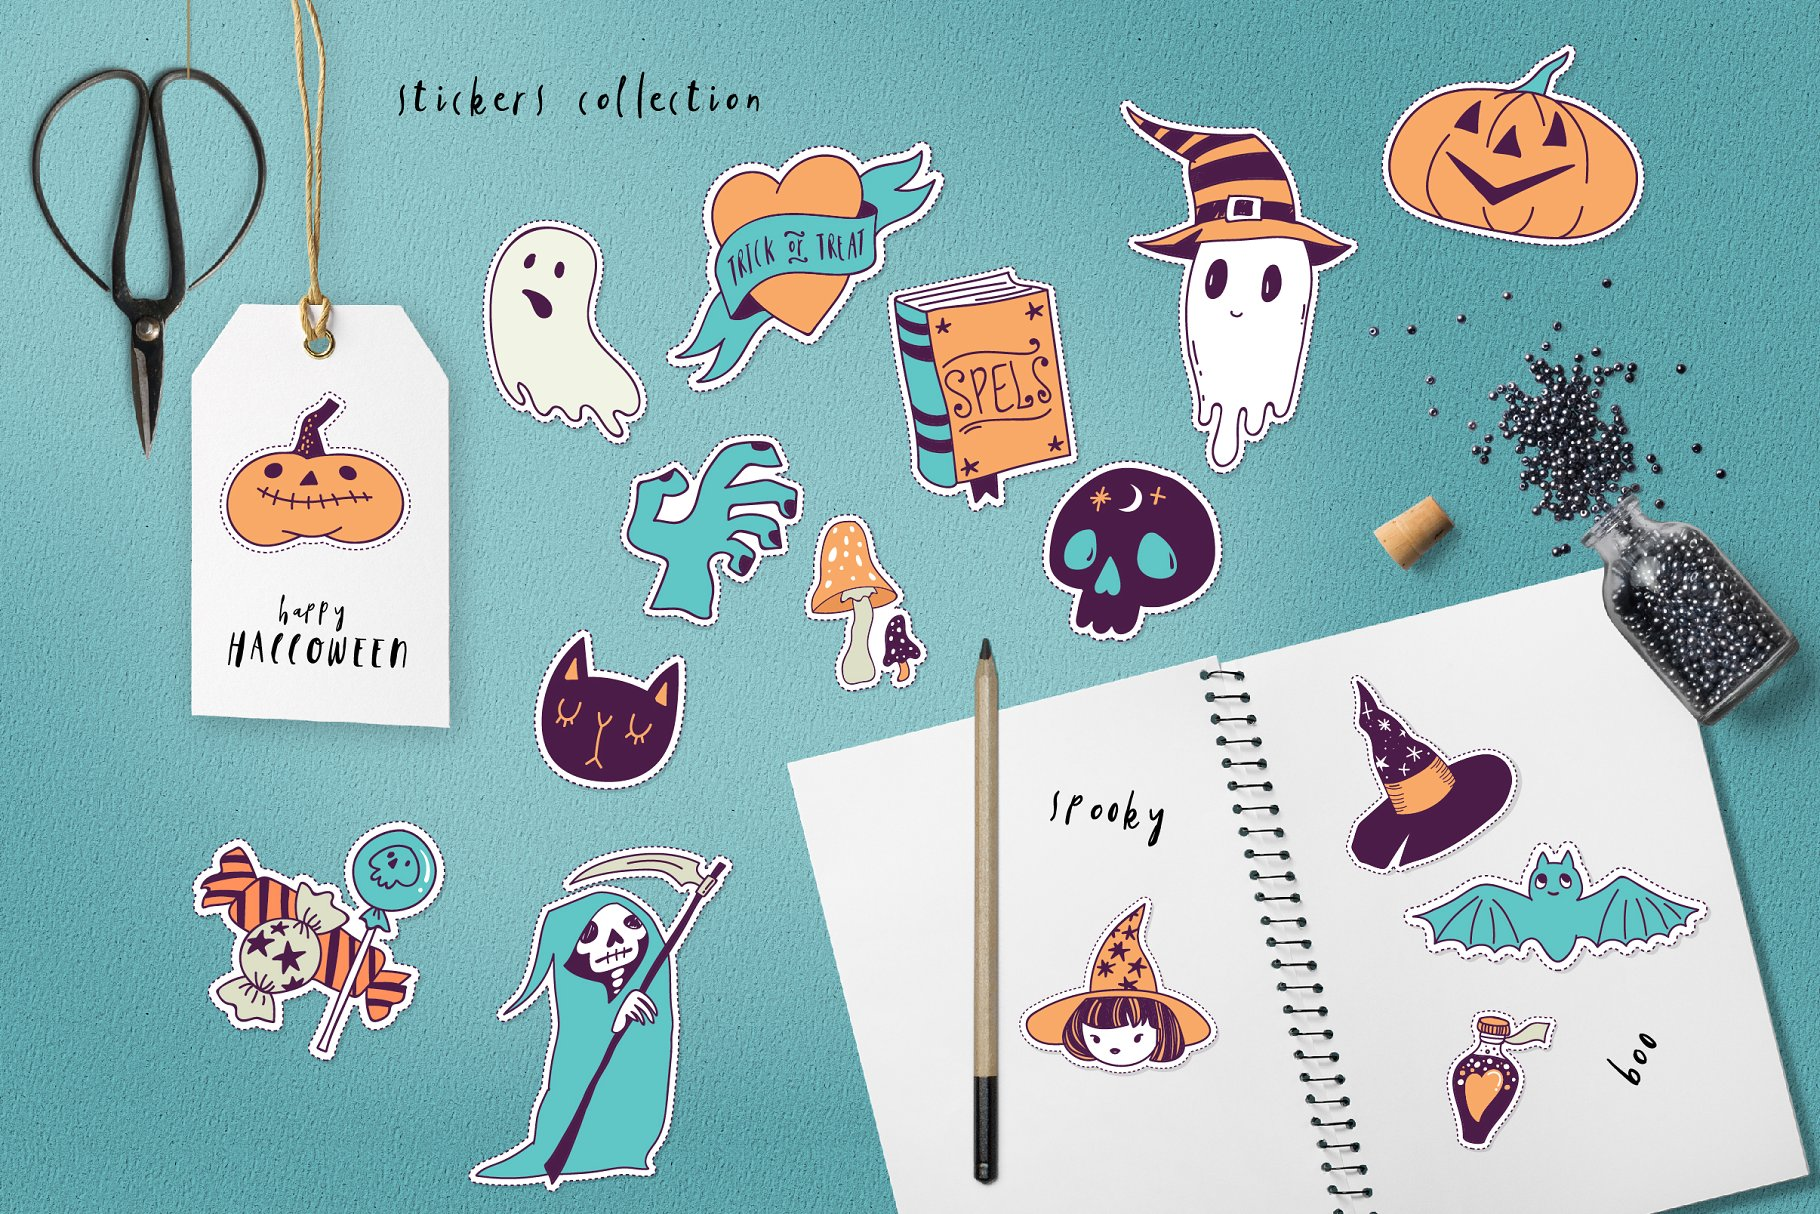 halloween-layout-03-.jpg